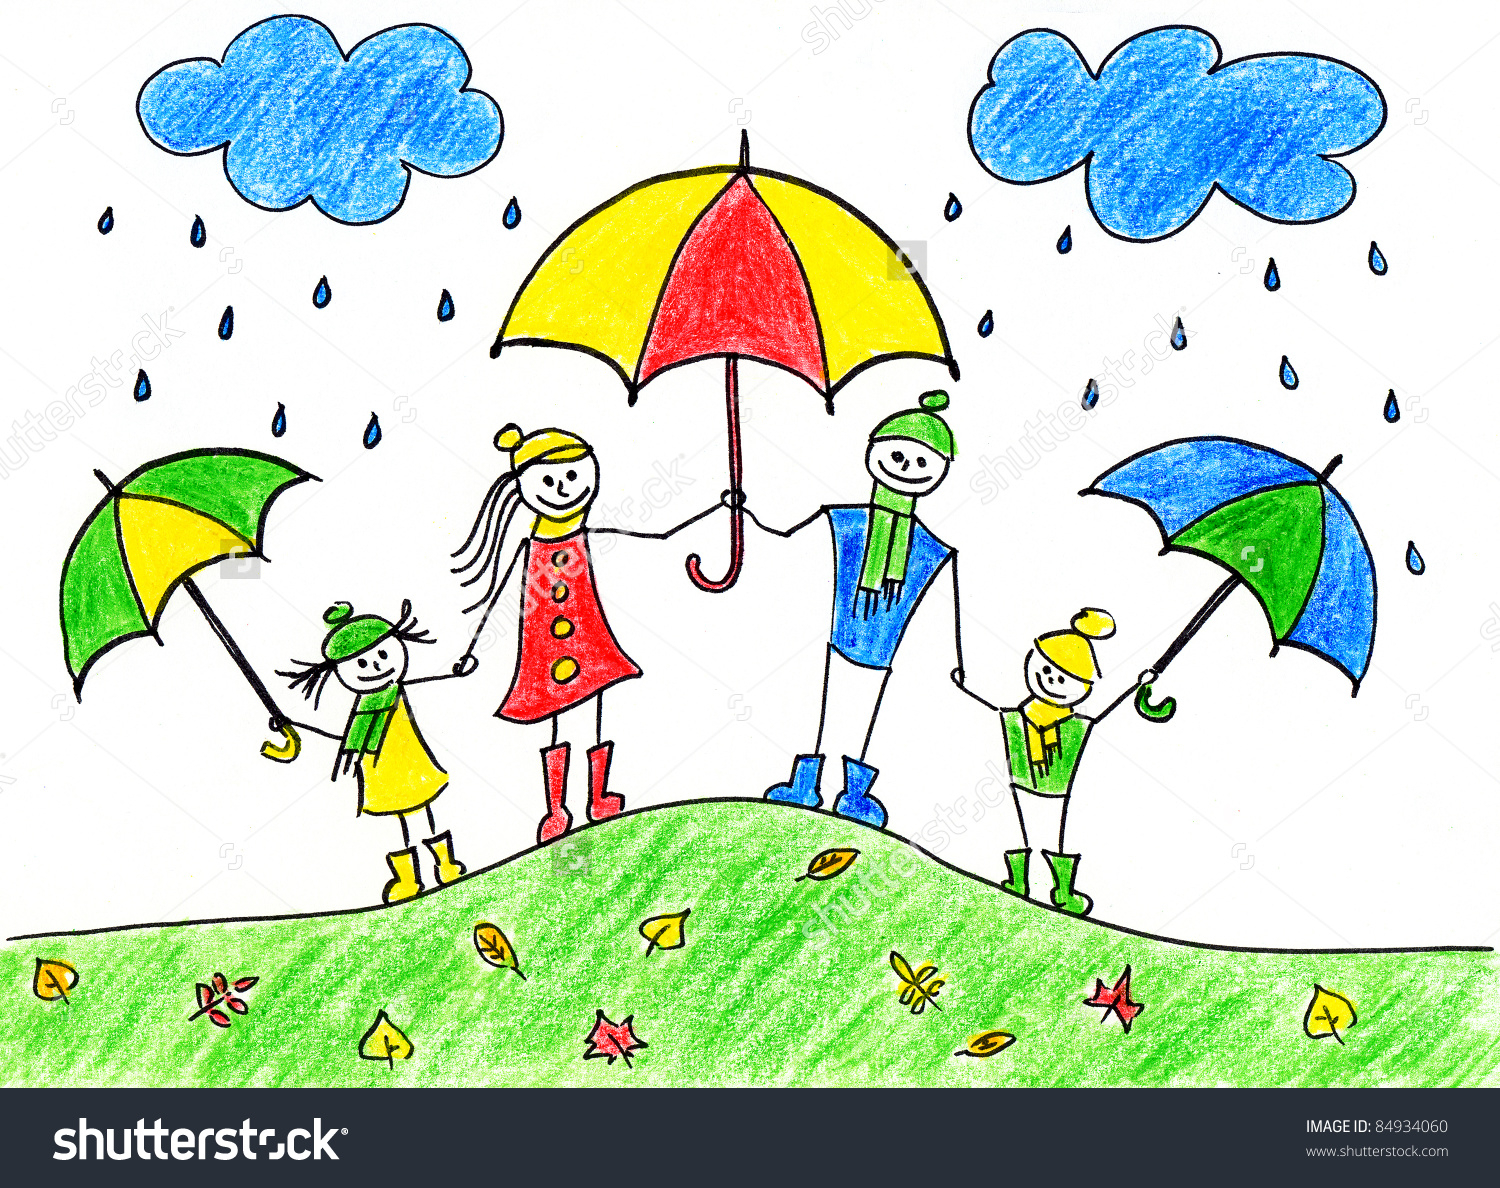 1500x1188 Rainy Day Drawing For Children Childrens Drawing Happy Family